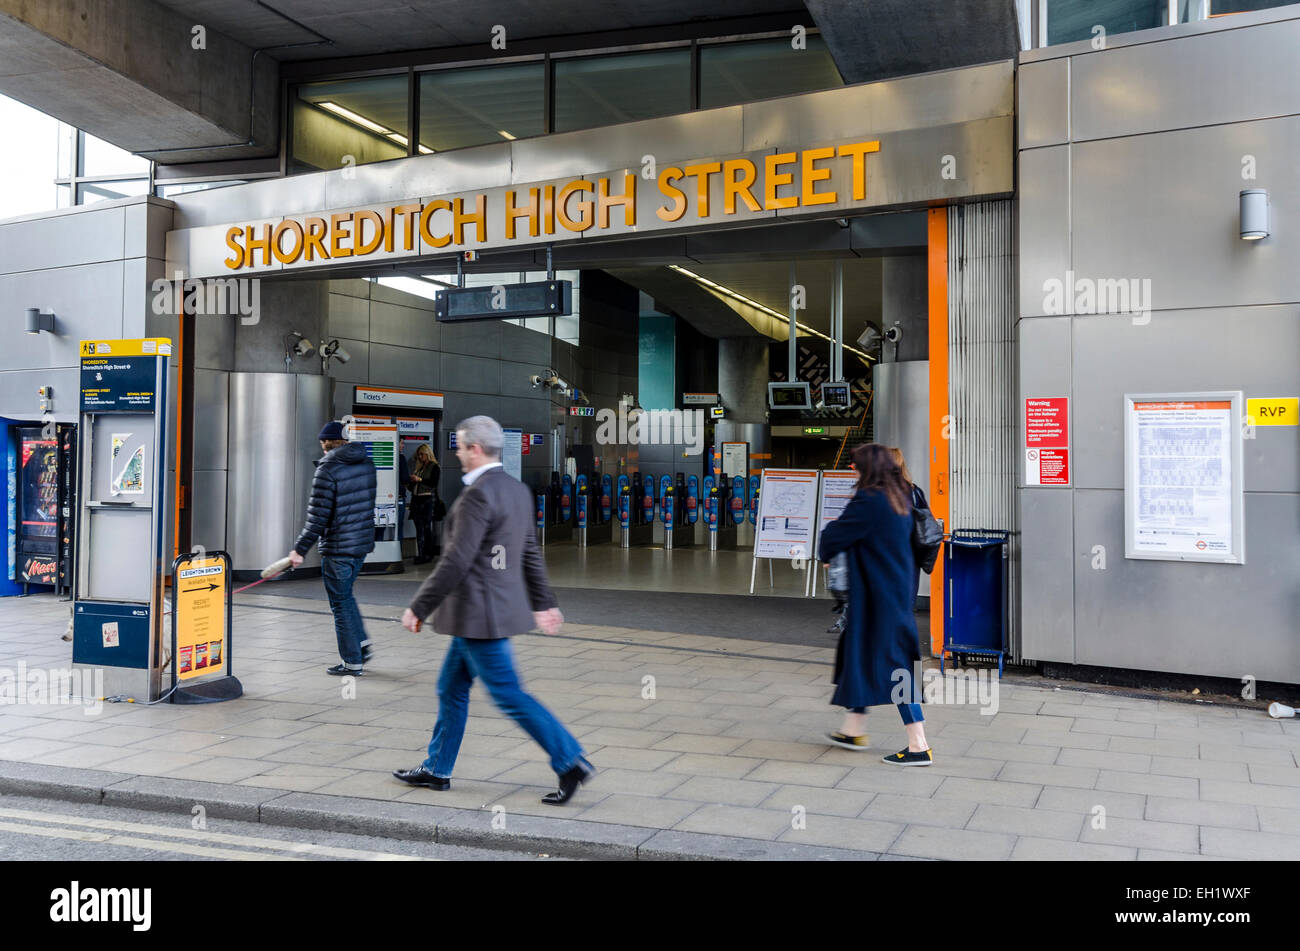 The entrance to Shoreditch High Street overground rail station, London - Stock Image